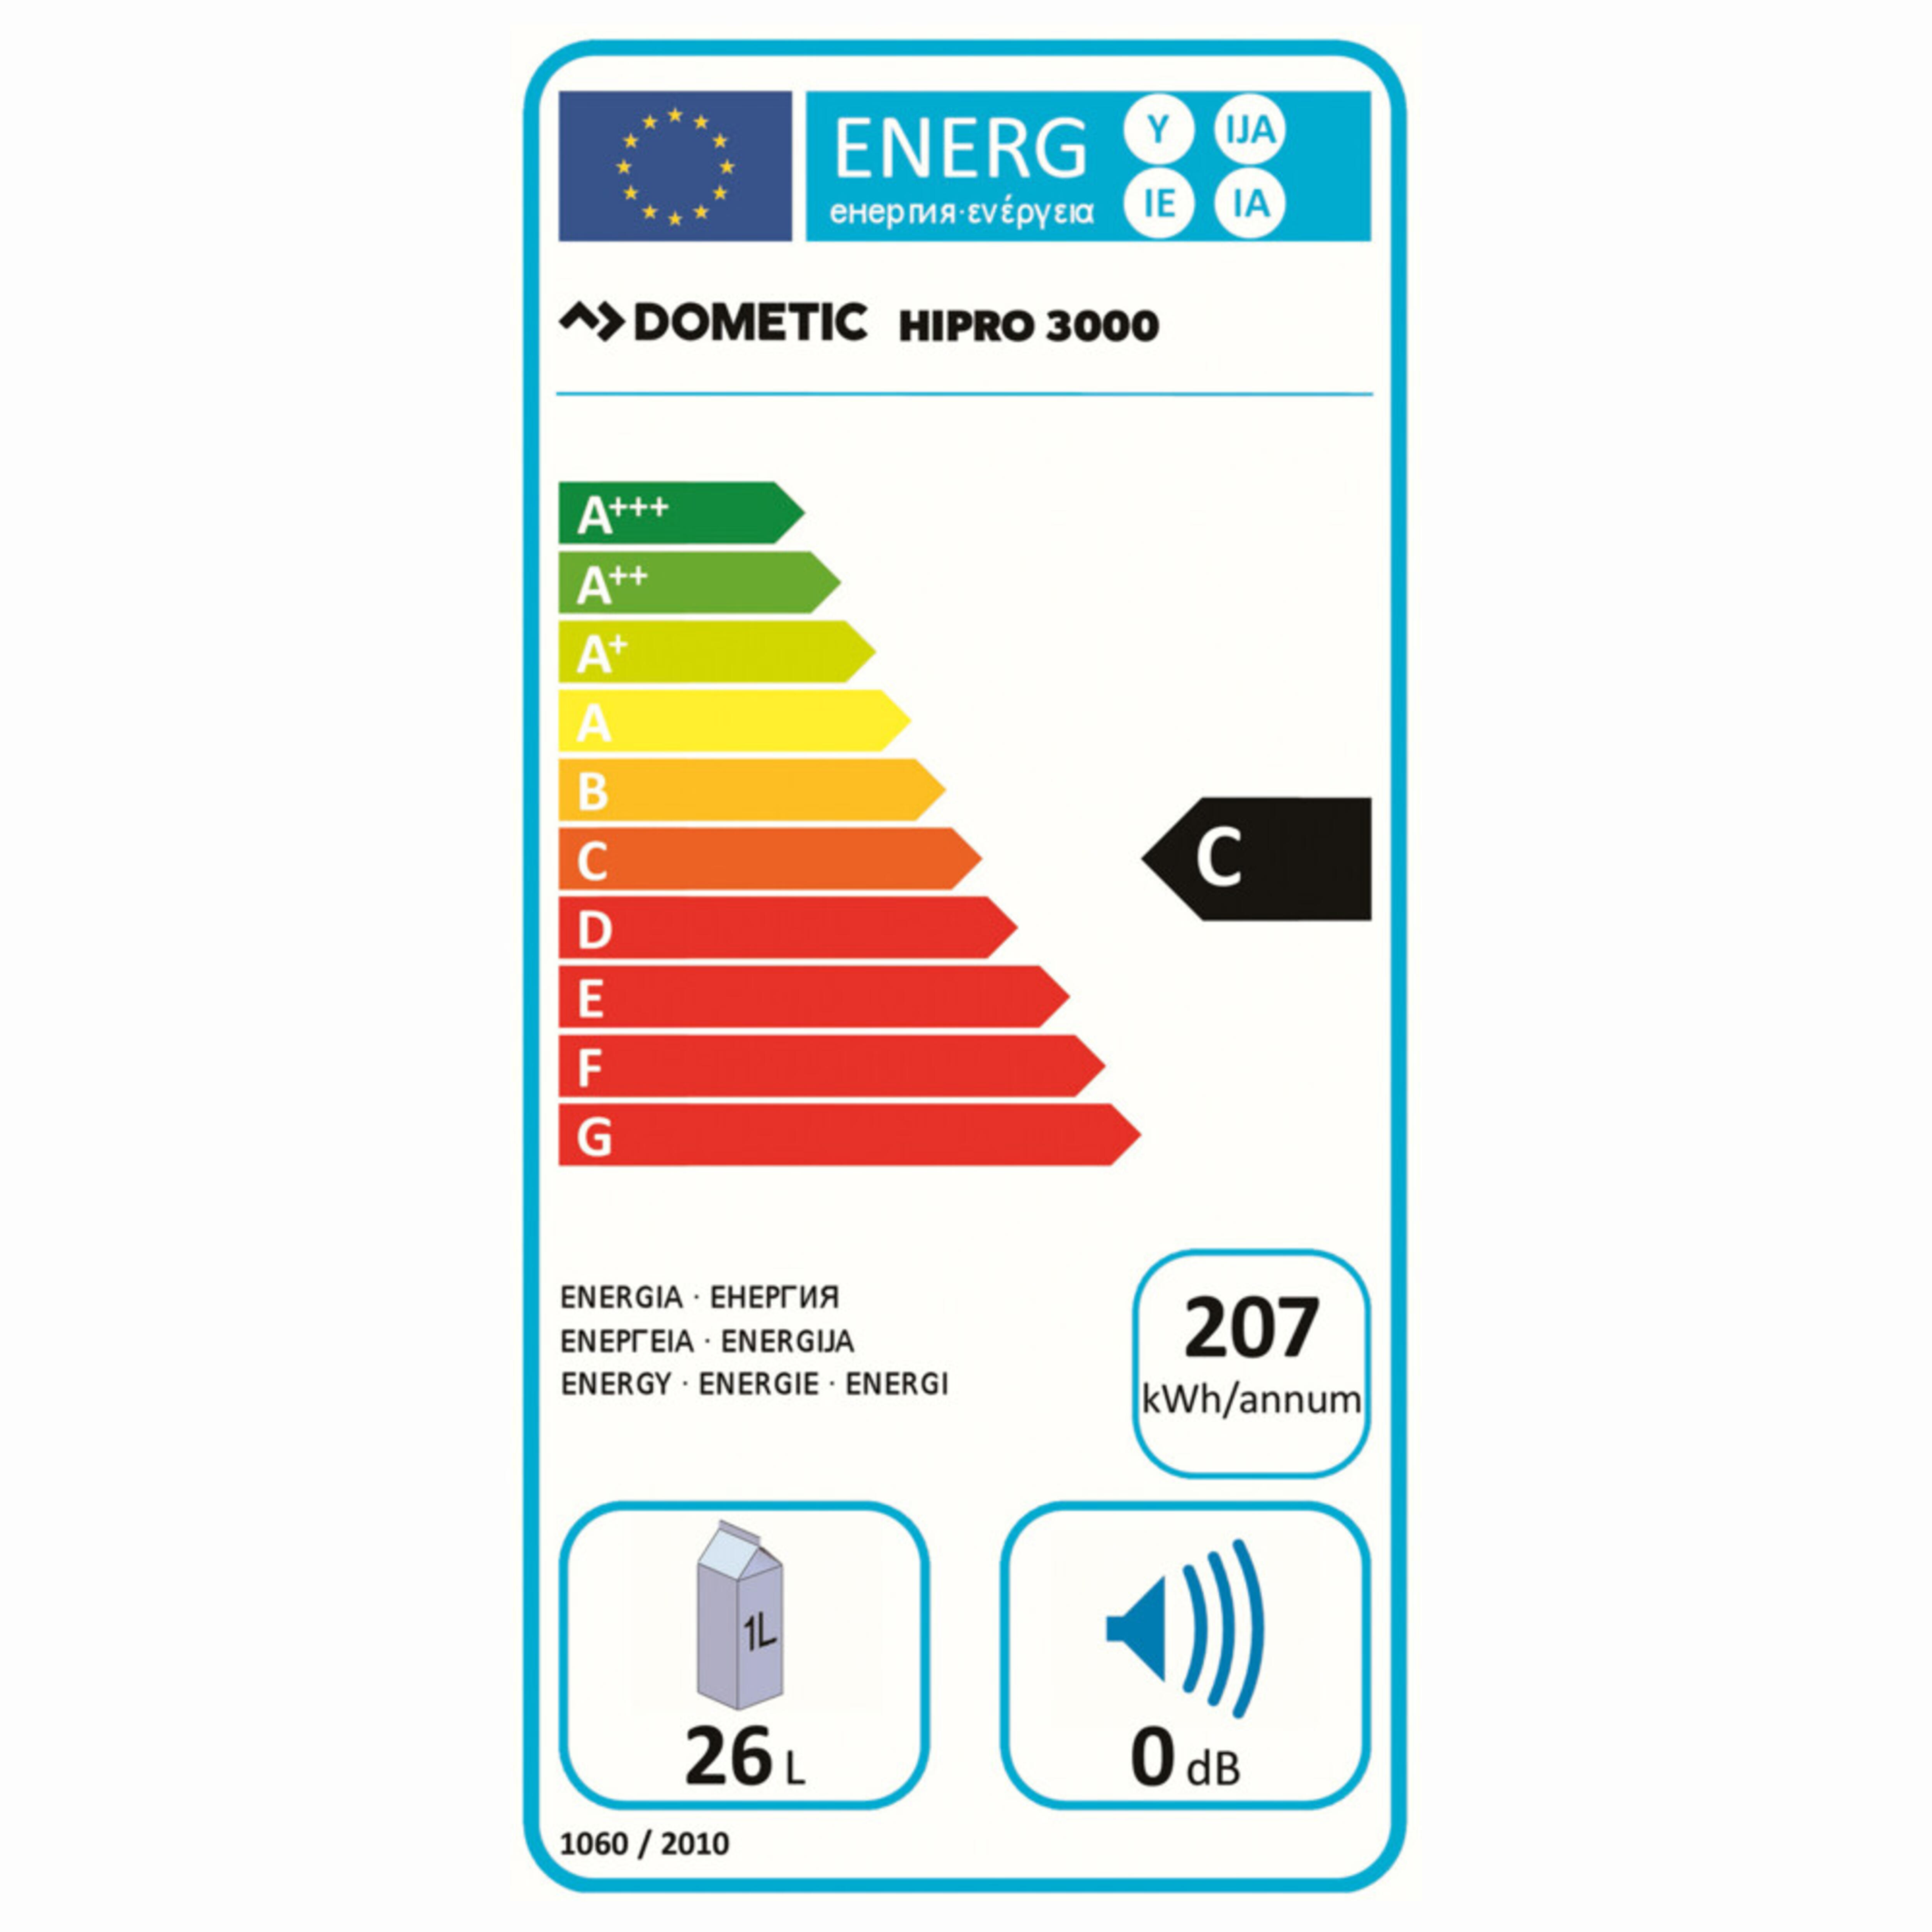 Dometic HiPro 3000 Energy label